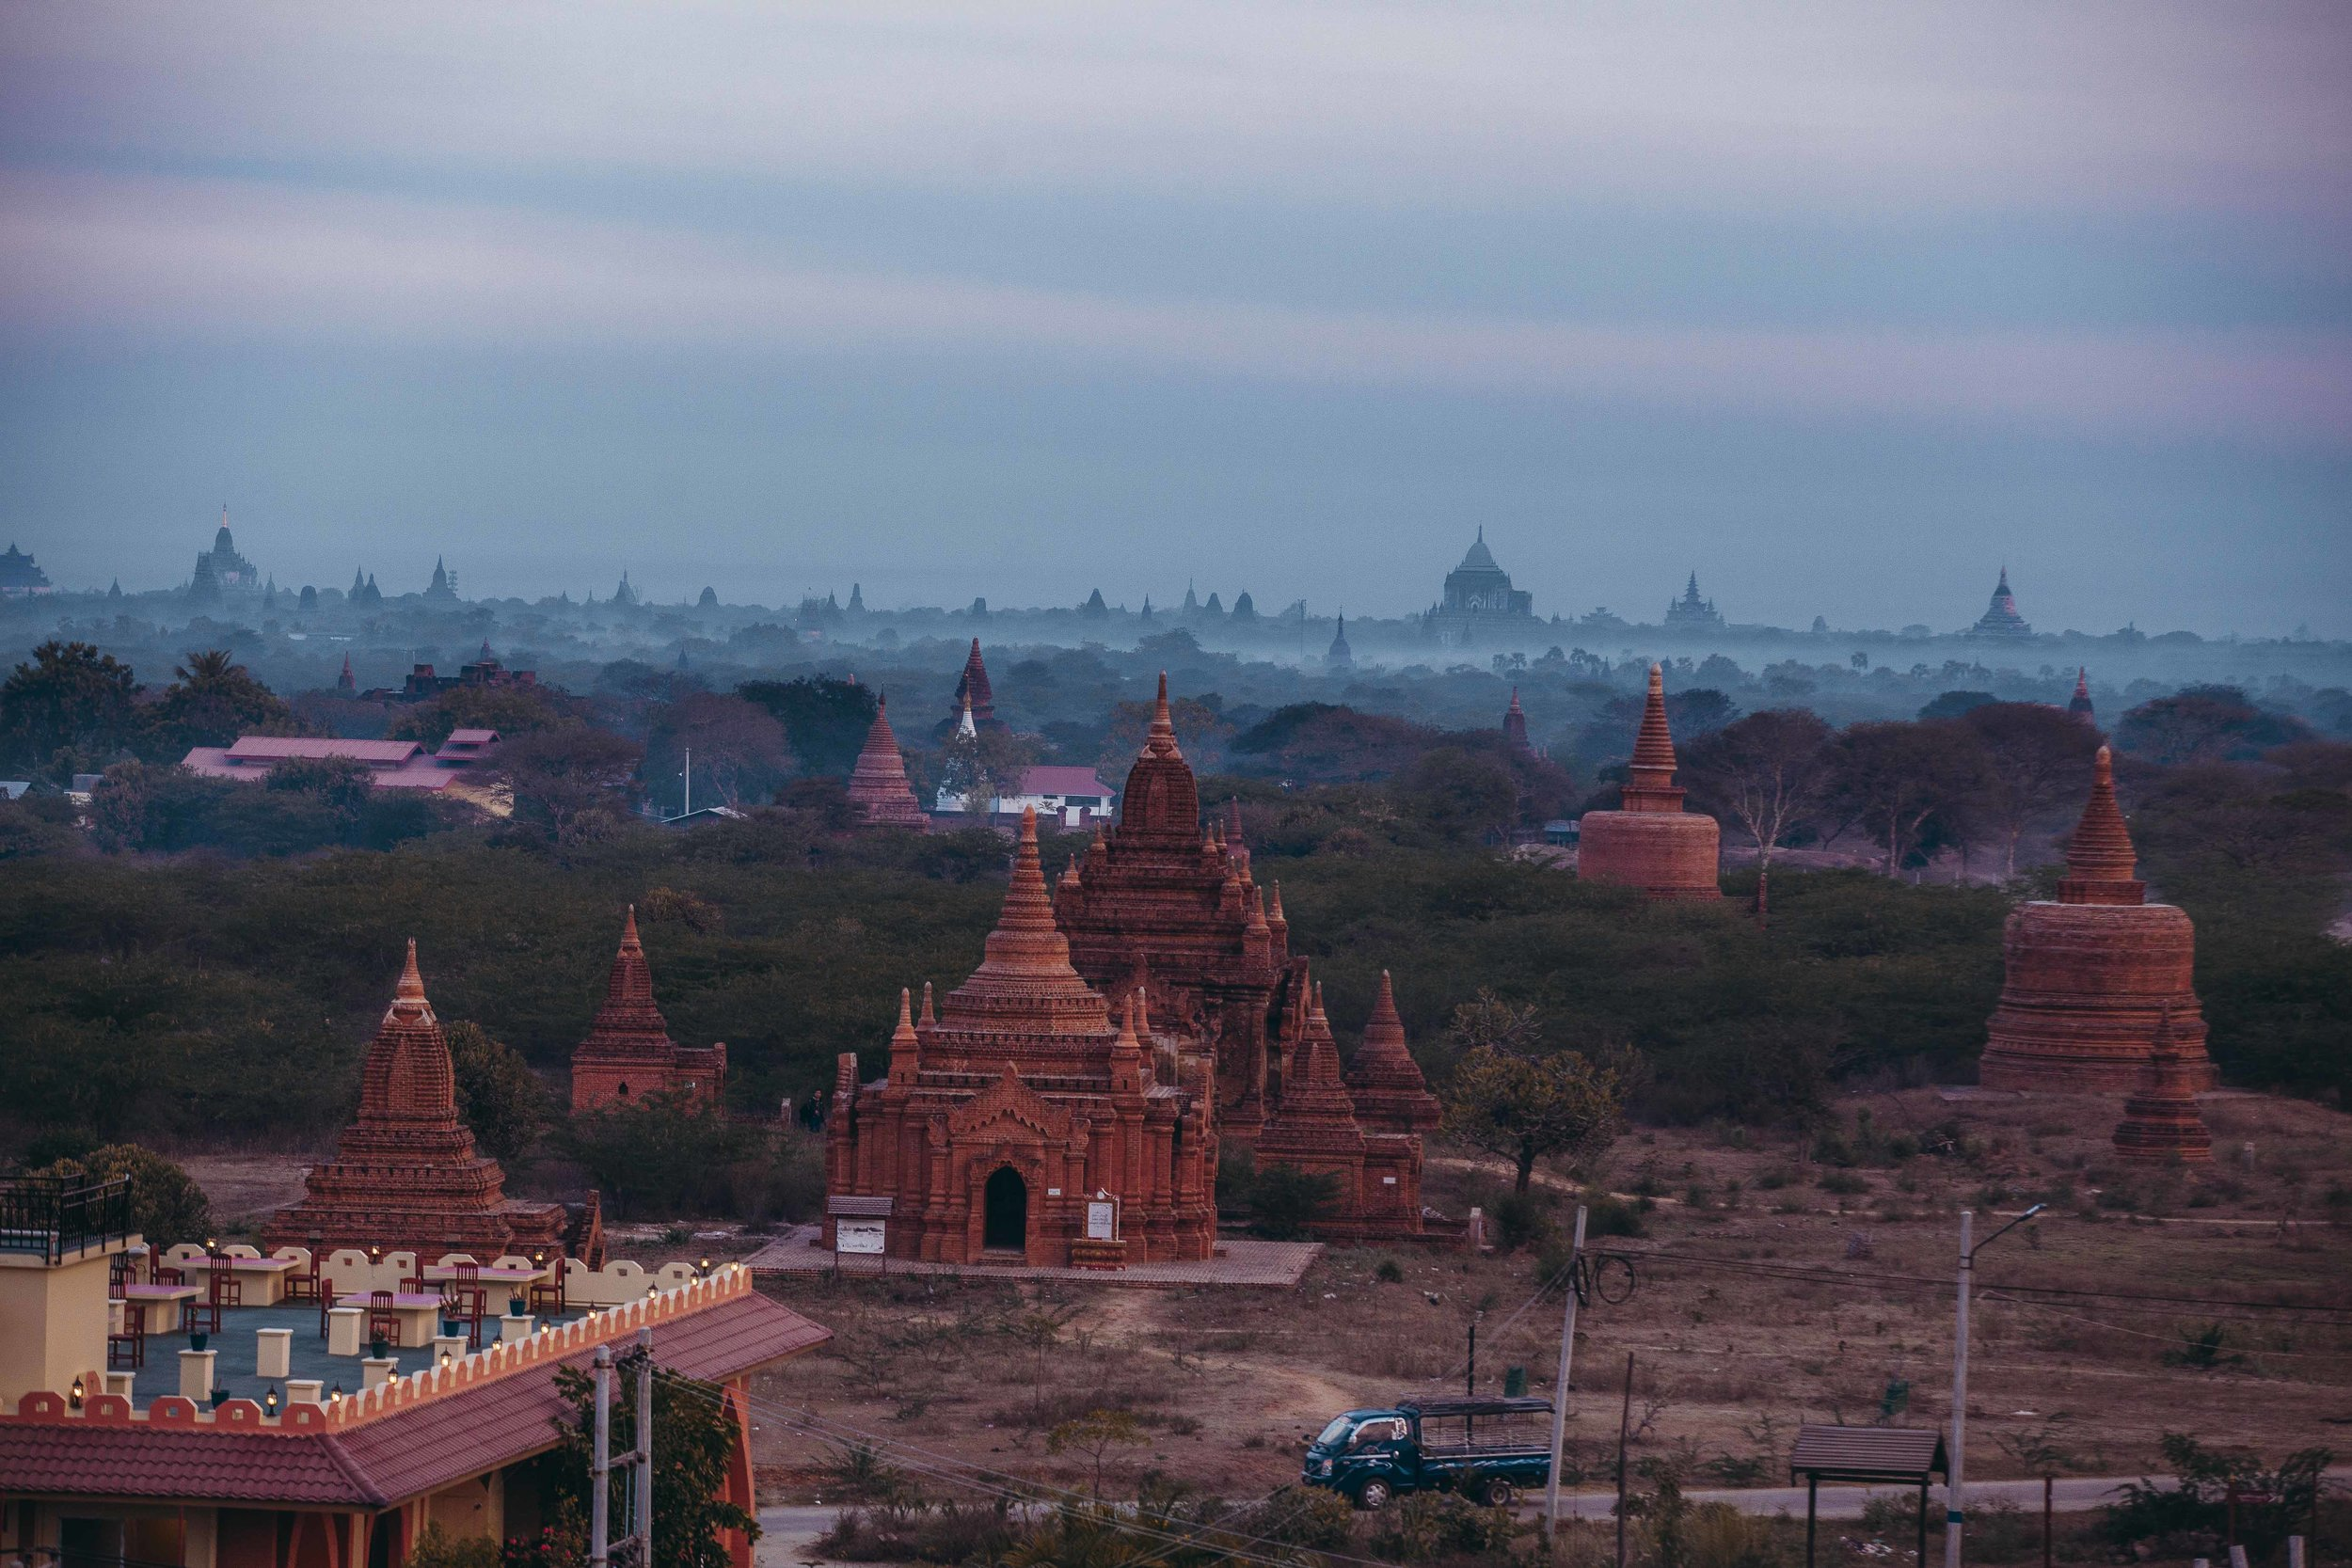 Rumor has it that this year Bagan will be added to the collection of UNESCO's world heritage cultural site.